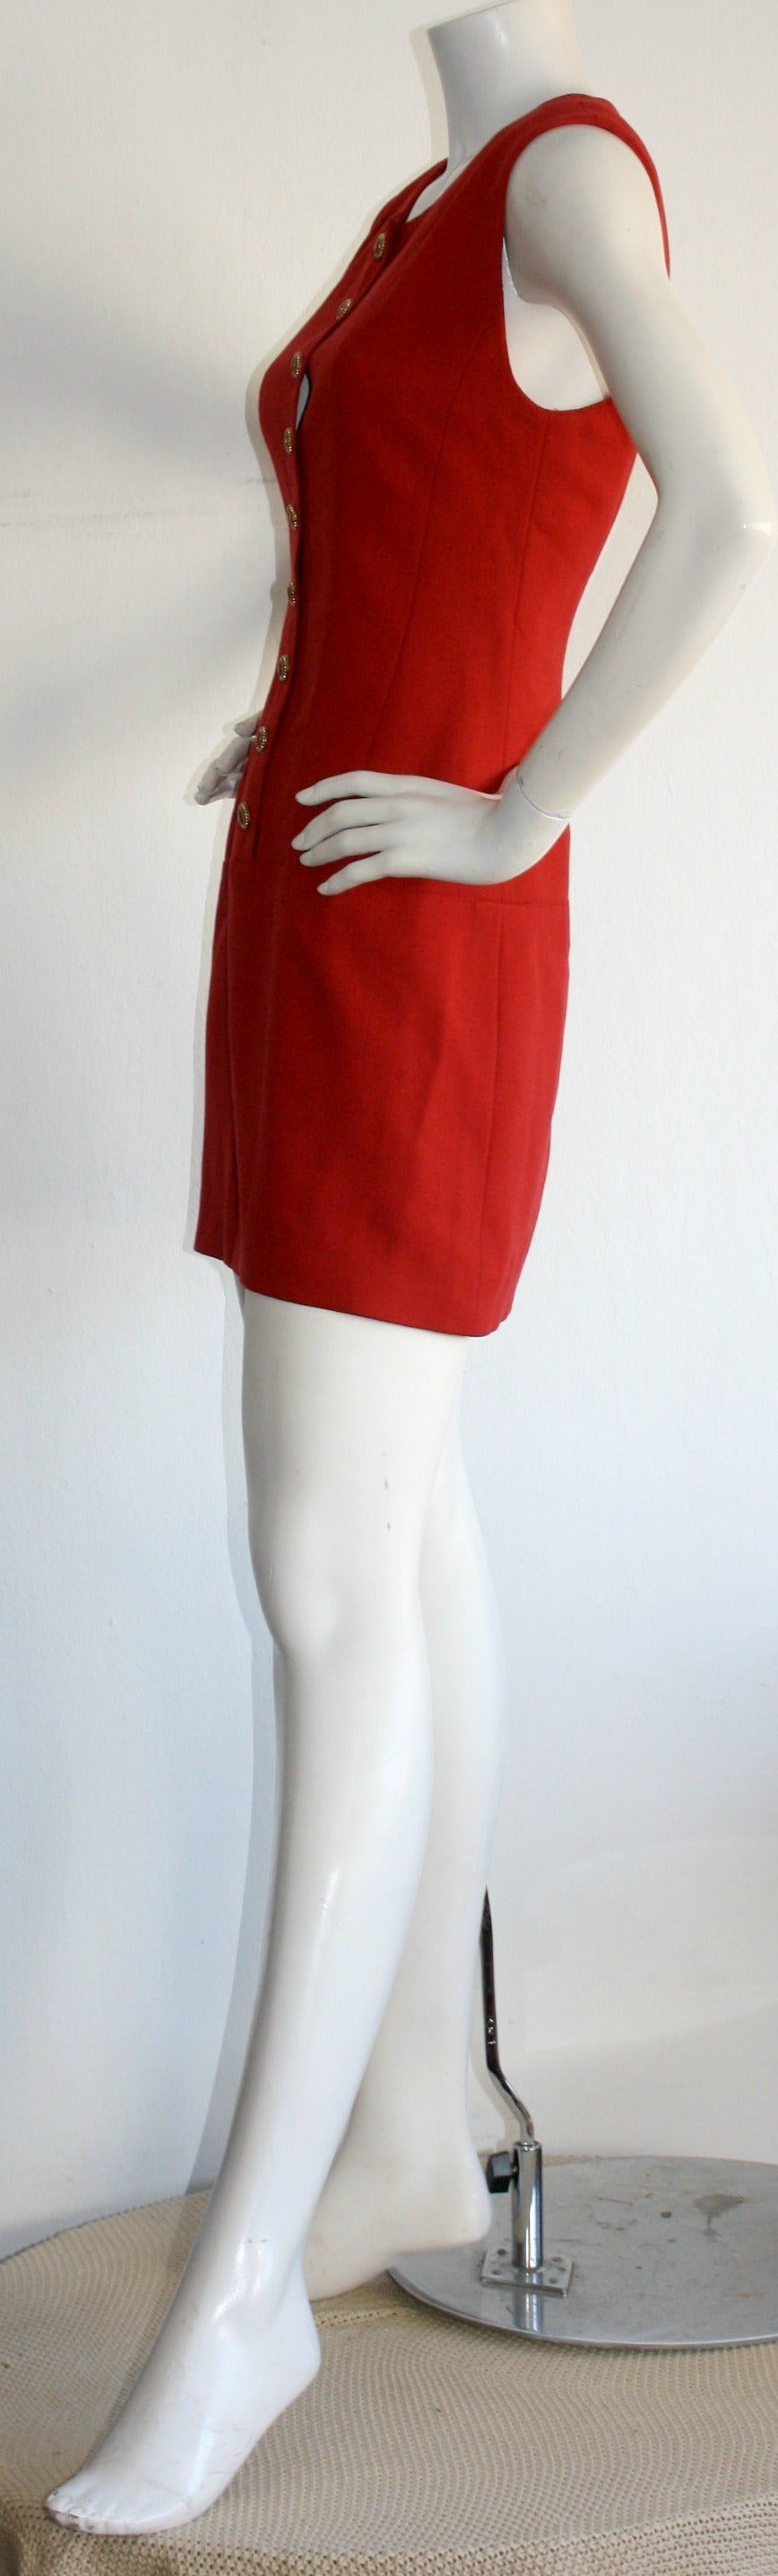 Vintage Karl Lagerfeld 1990s Does 1960s Red Scooter Dress 5